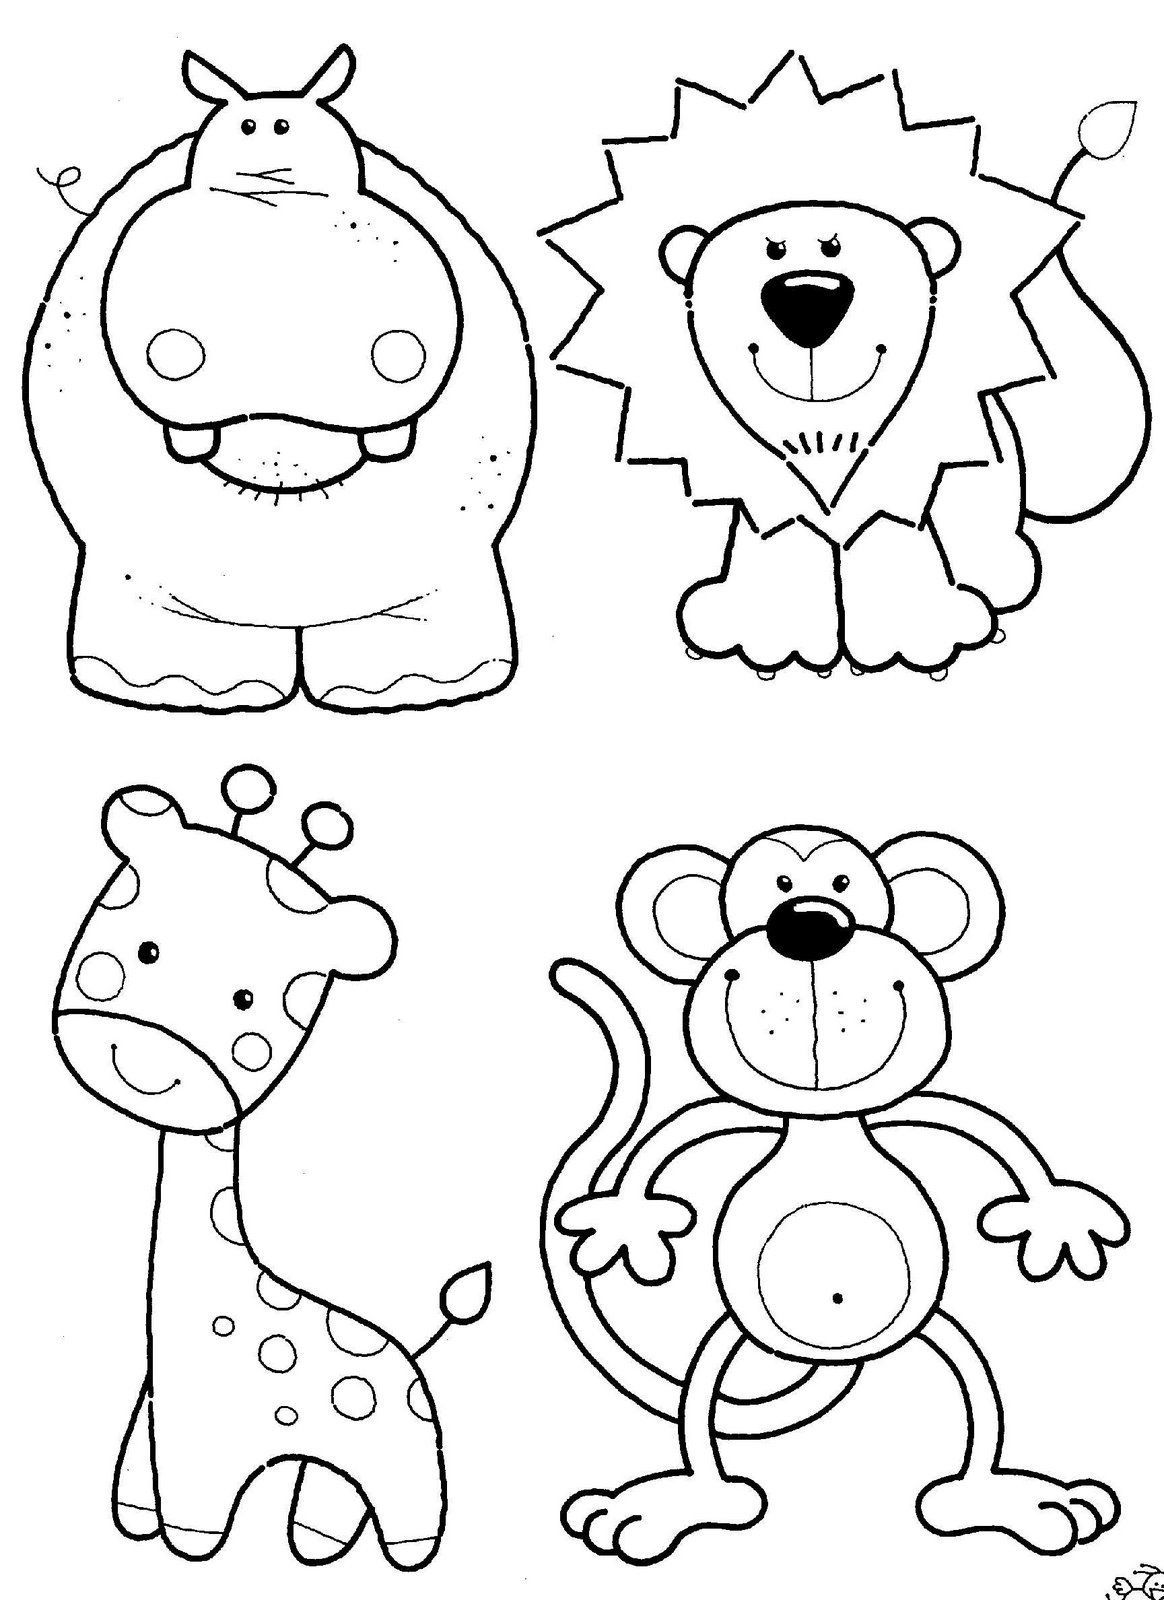 Knuffle Bunny Coloring Pages Knuffle Bunny Coloring Pages